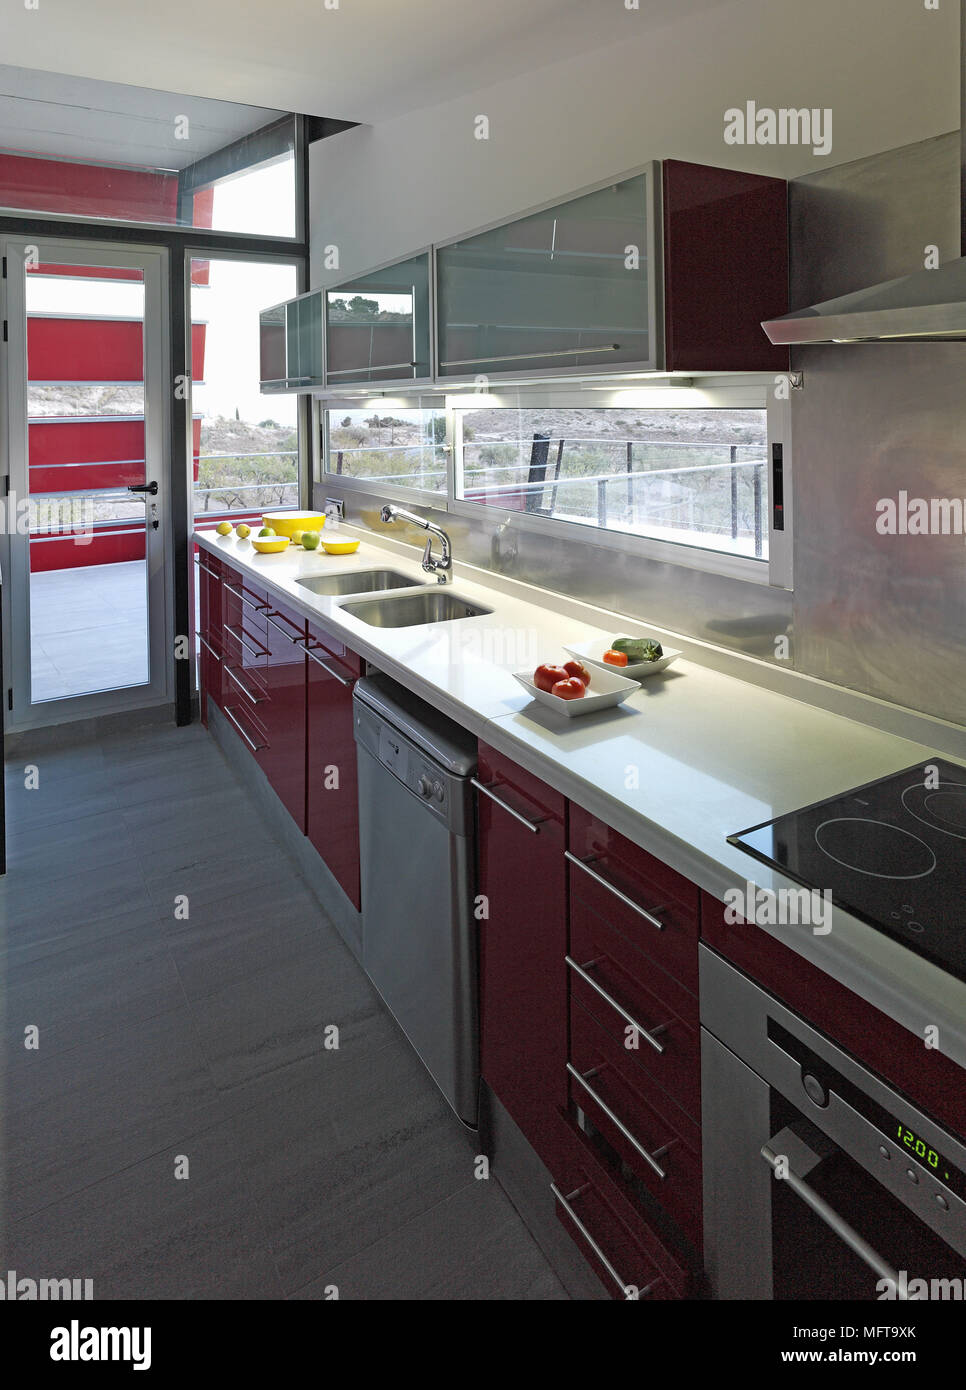 Double Sink Set In Worktop In Modern Kitchen With Red Units Stock